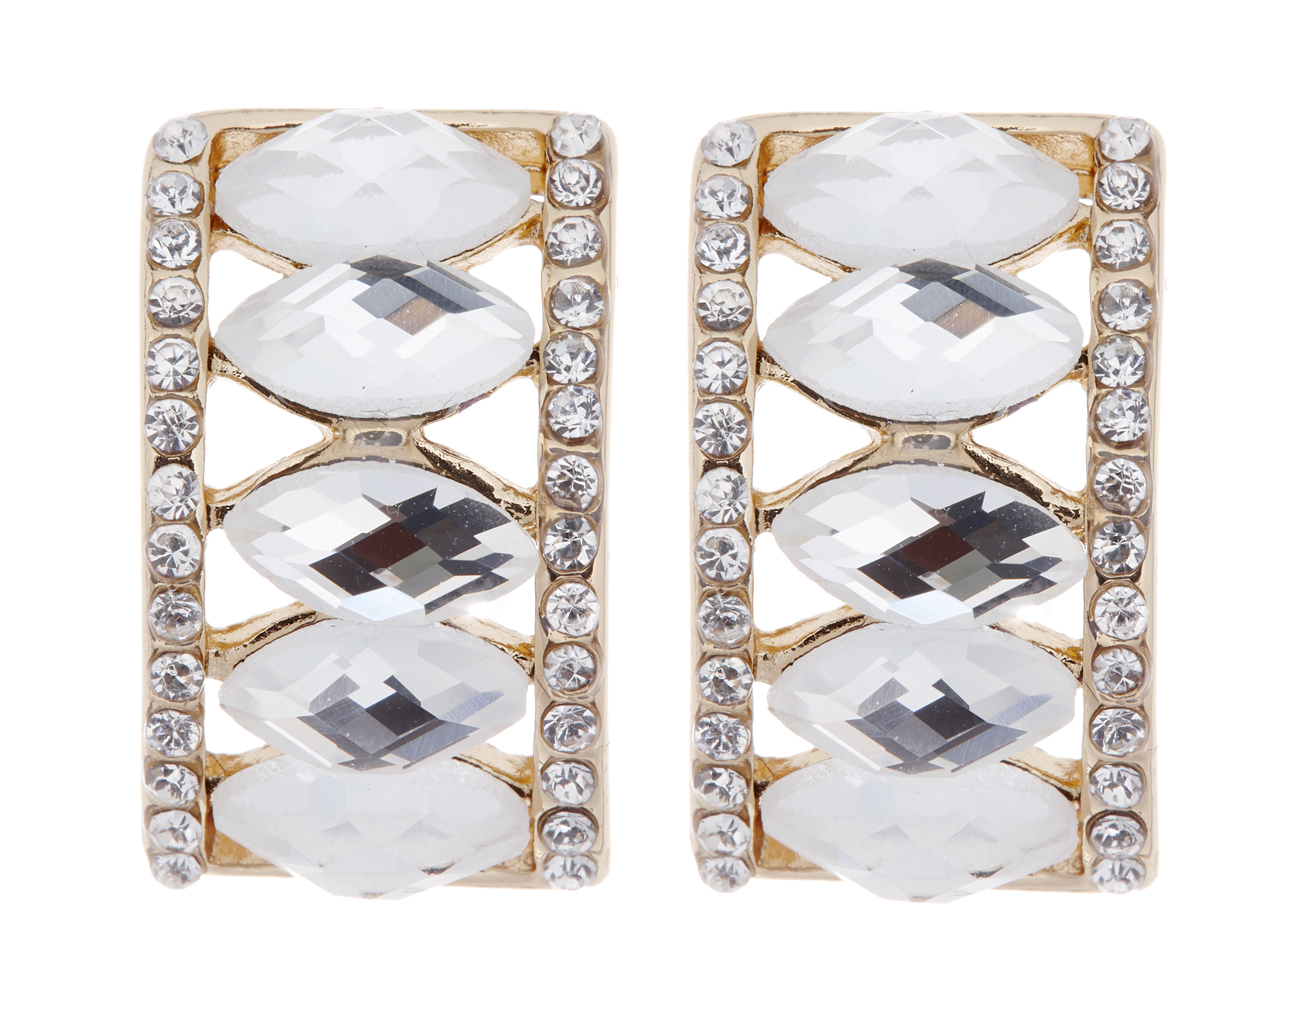 Clip on earrings - Magde - gold earring with clear crystals and oval stones